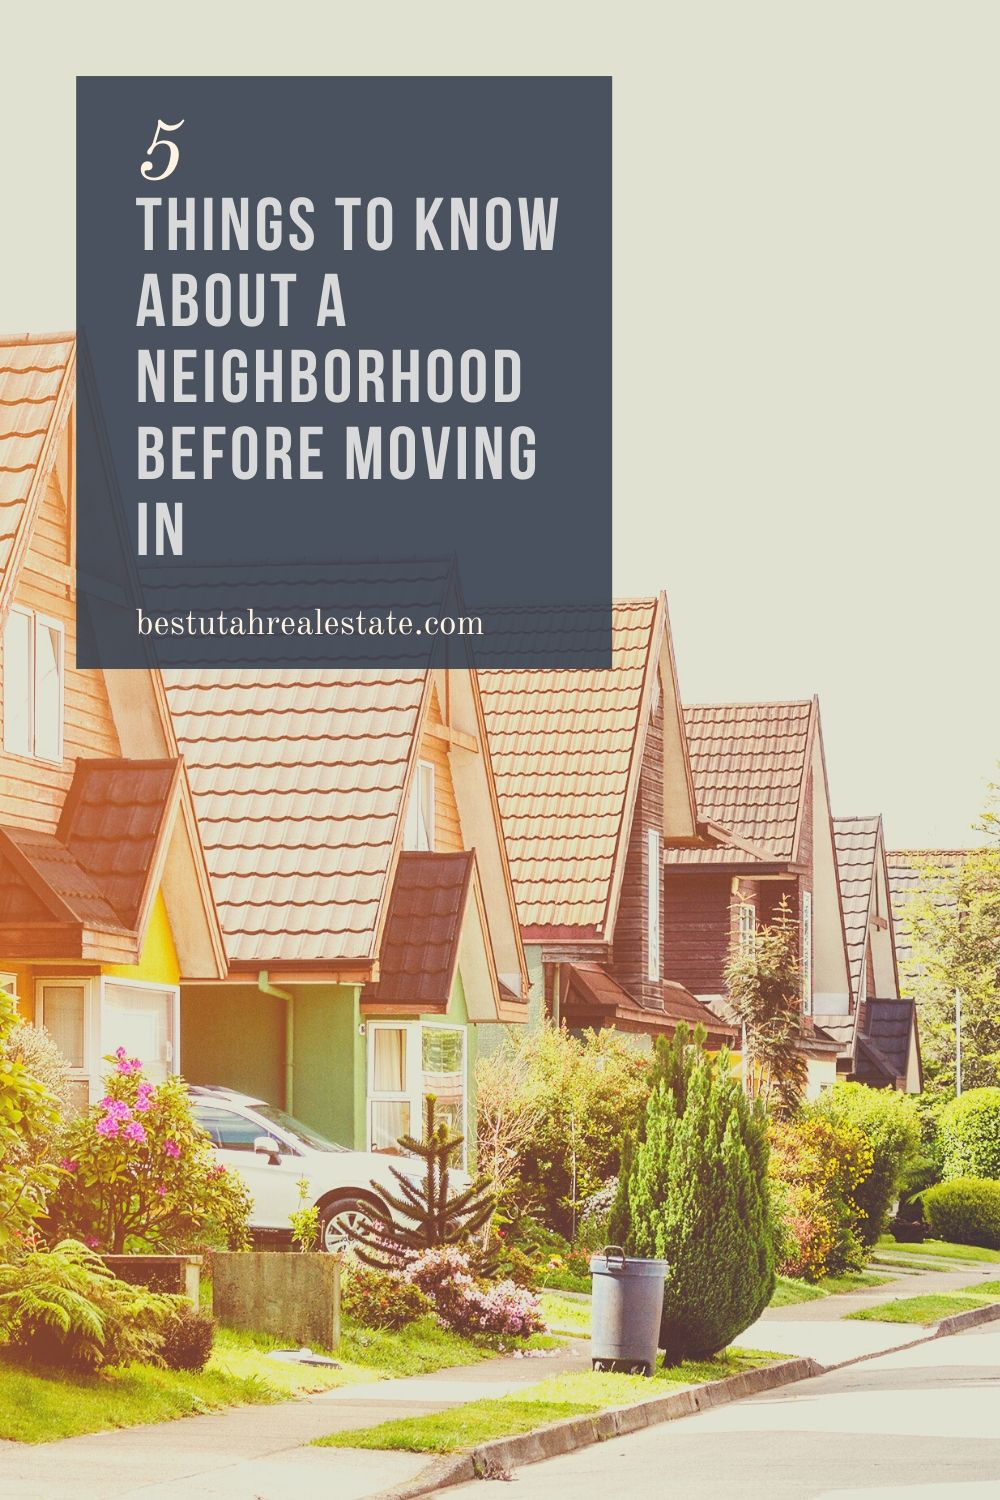 5 things to know about a neighborhood before moving in